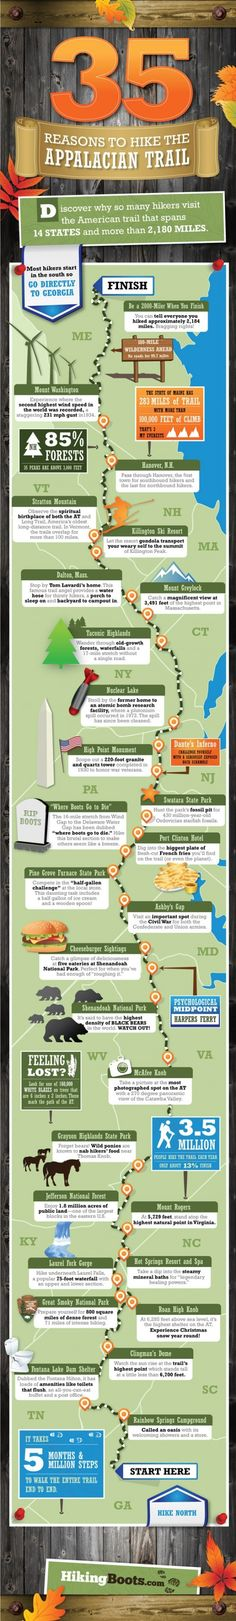 35 Reasons to Hike the Appalachian Trail Infographic